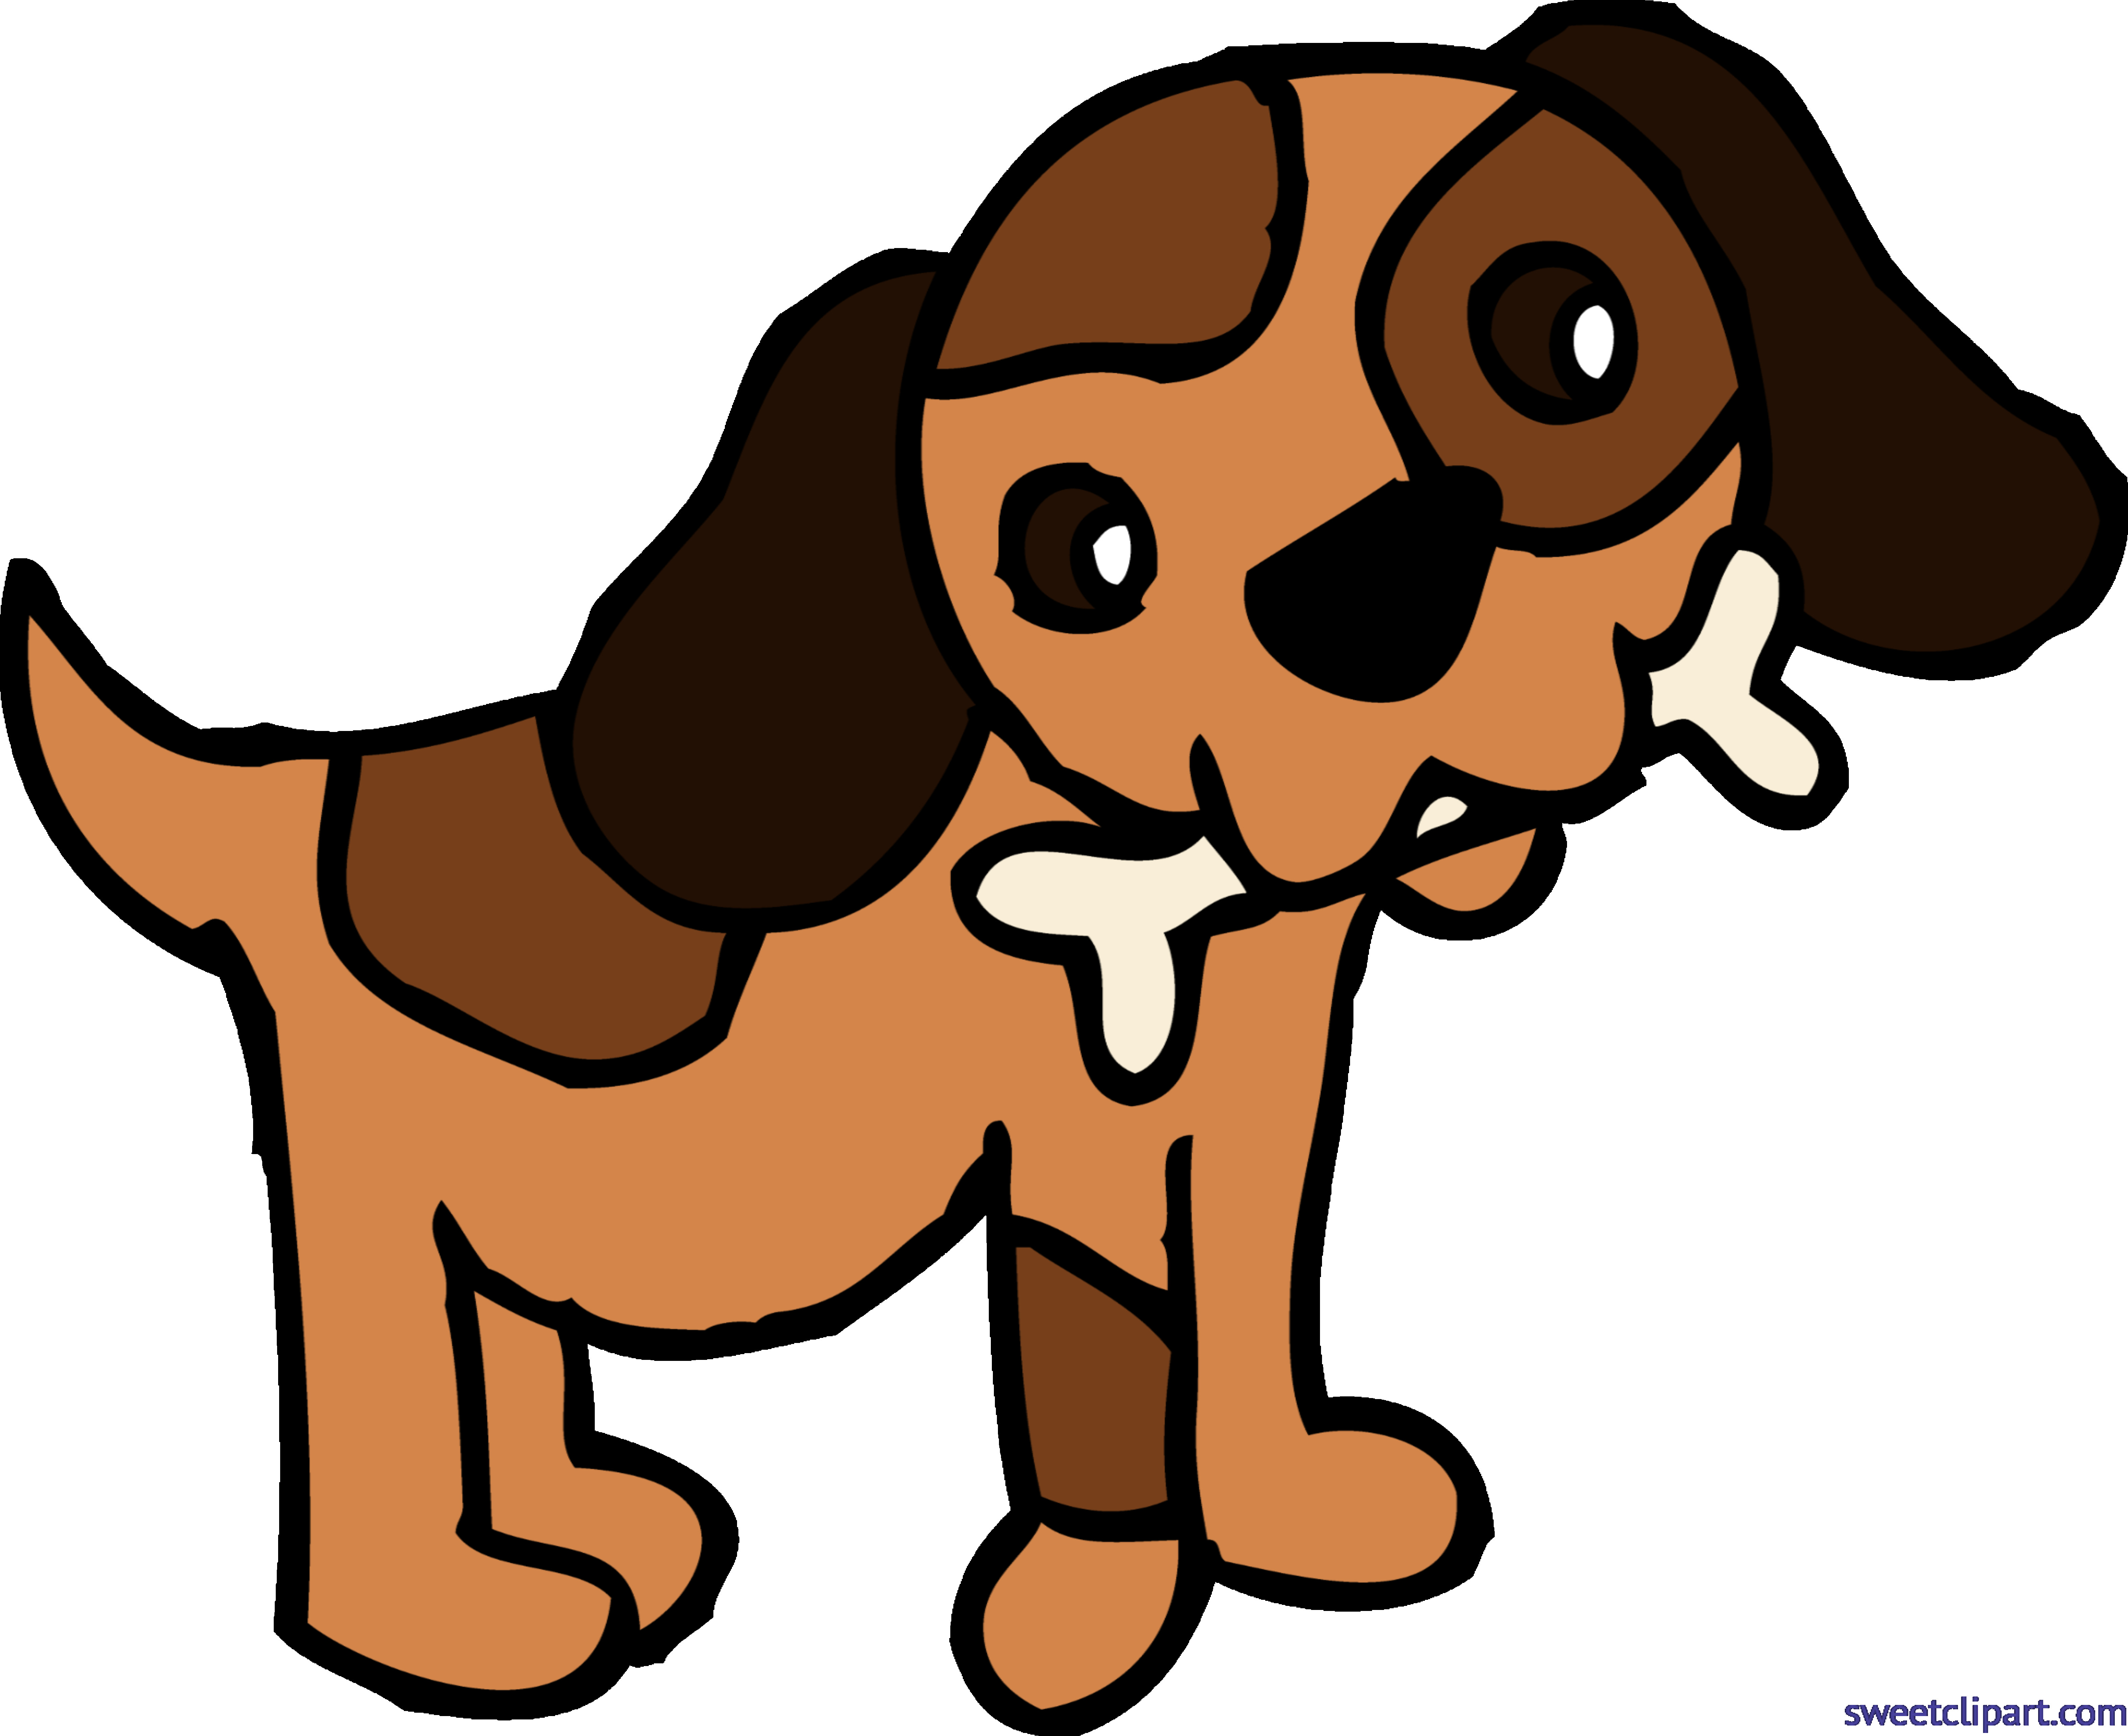 6297x5137 Puppy Dog With Bone Clip Art Sweet Unusual Clipart Png Transitionsfv